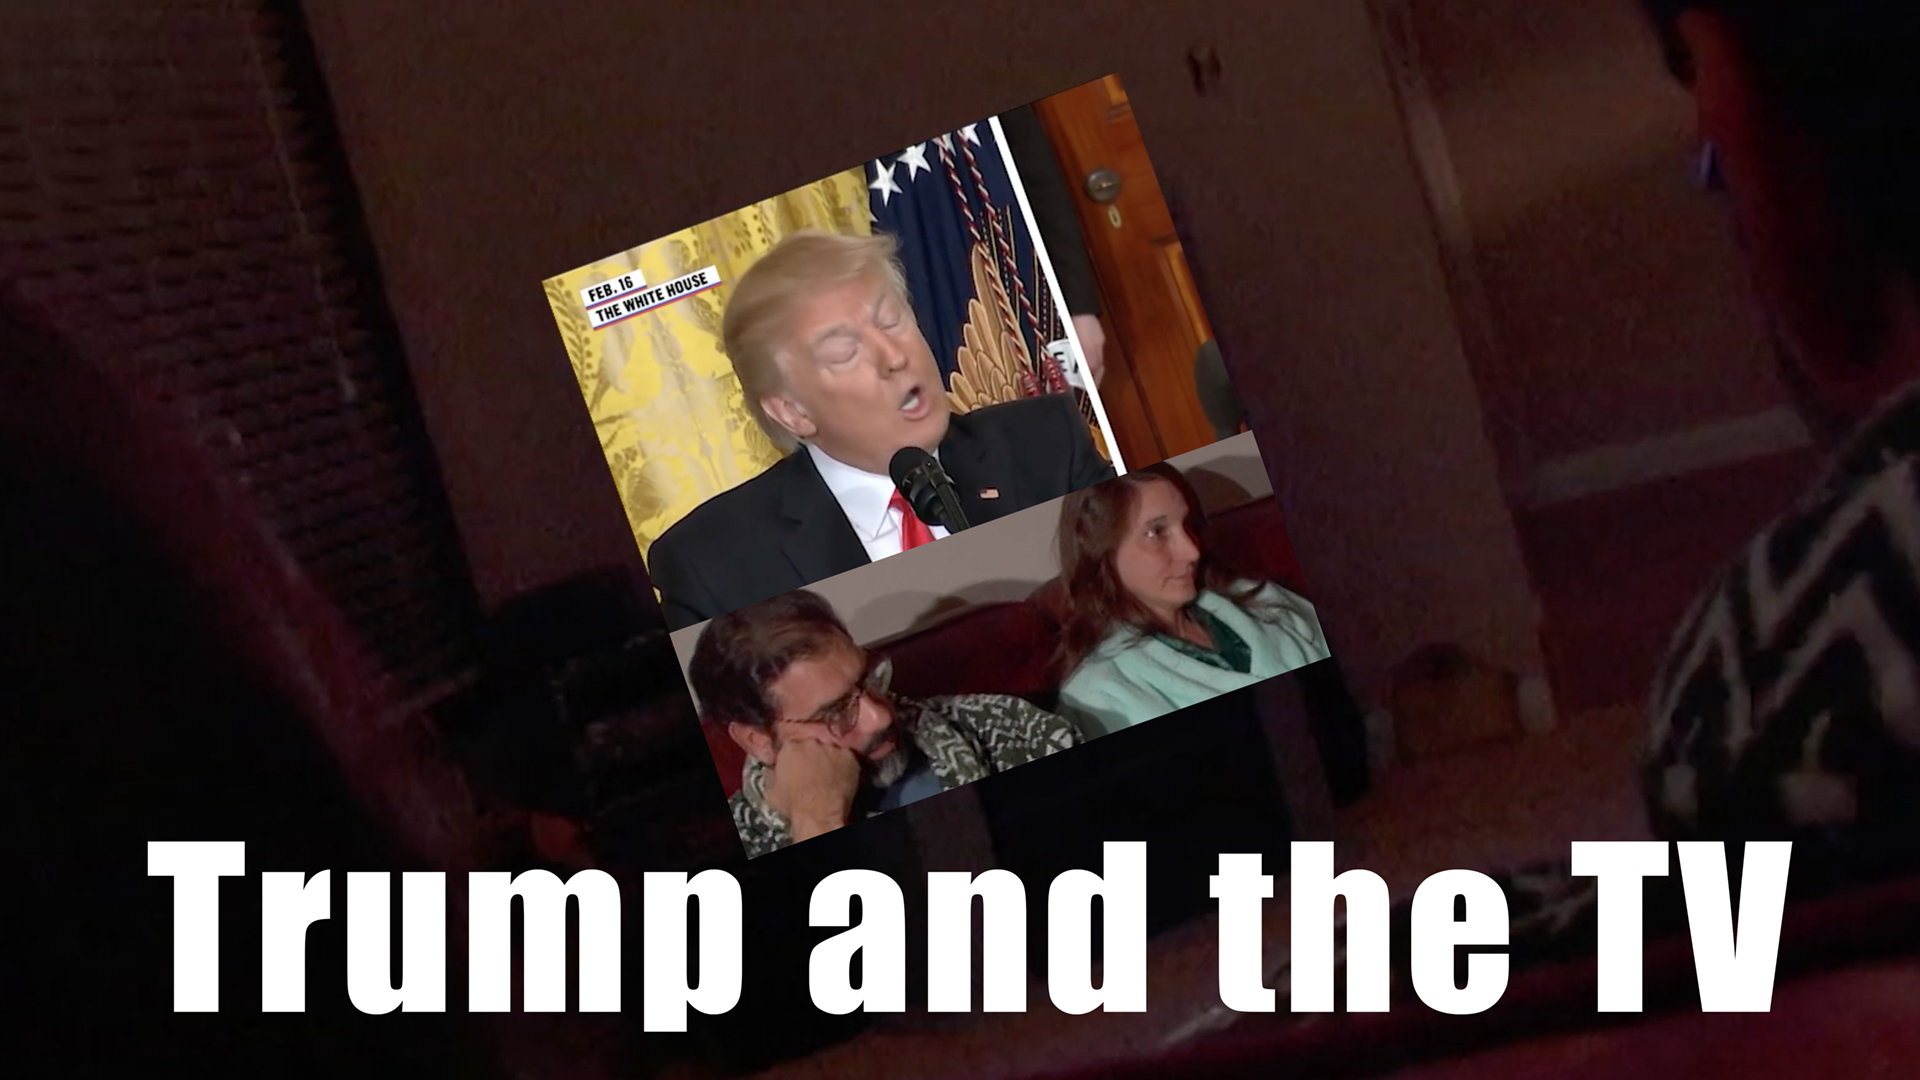 Trump and the TV